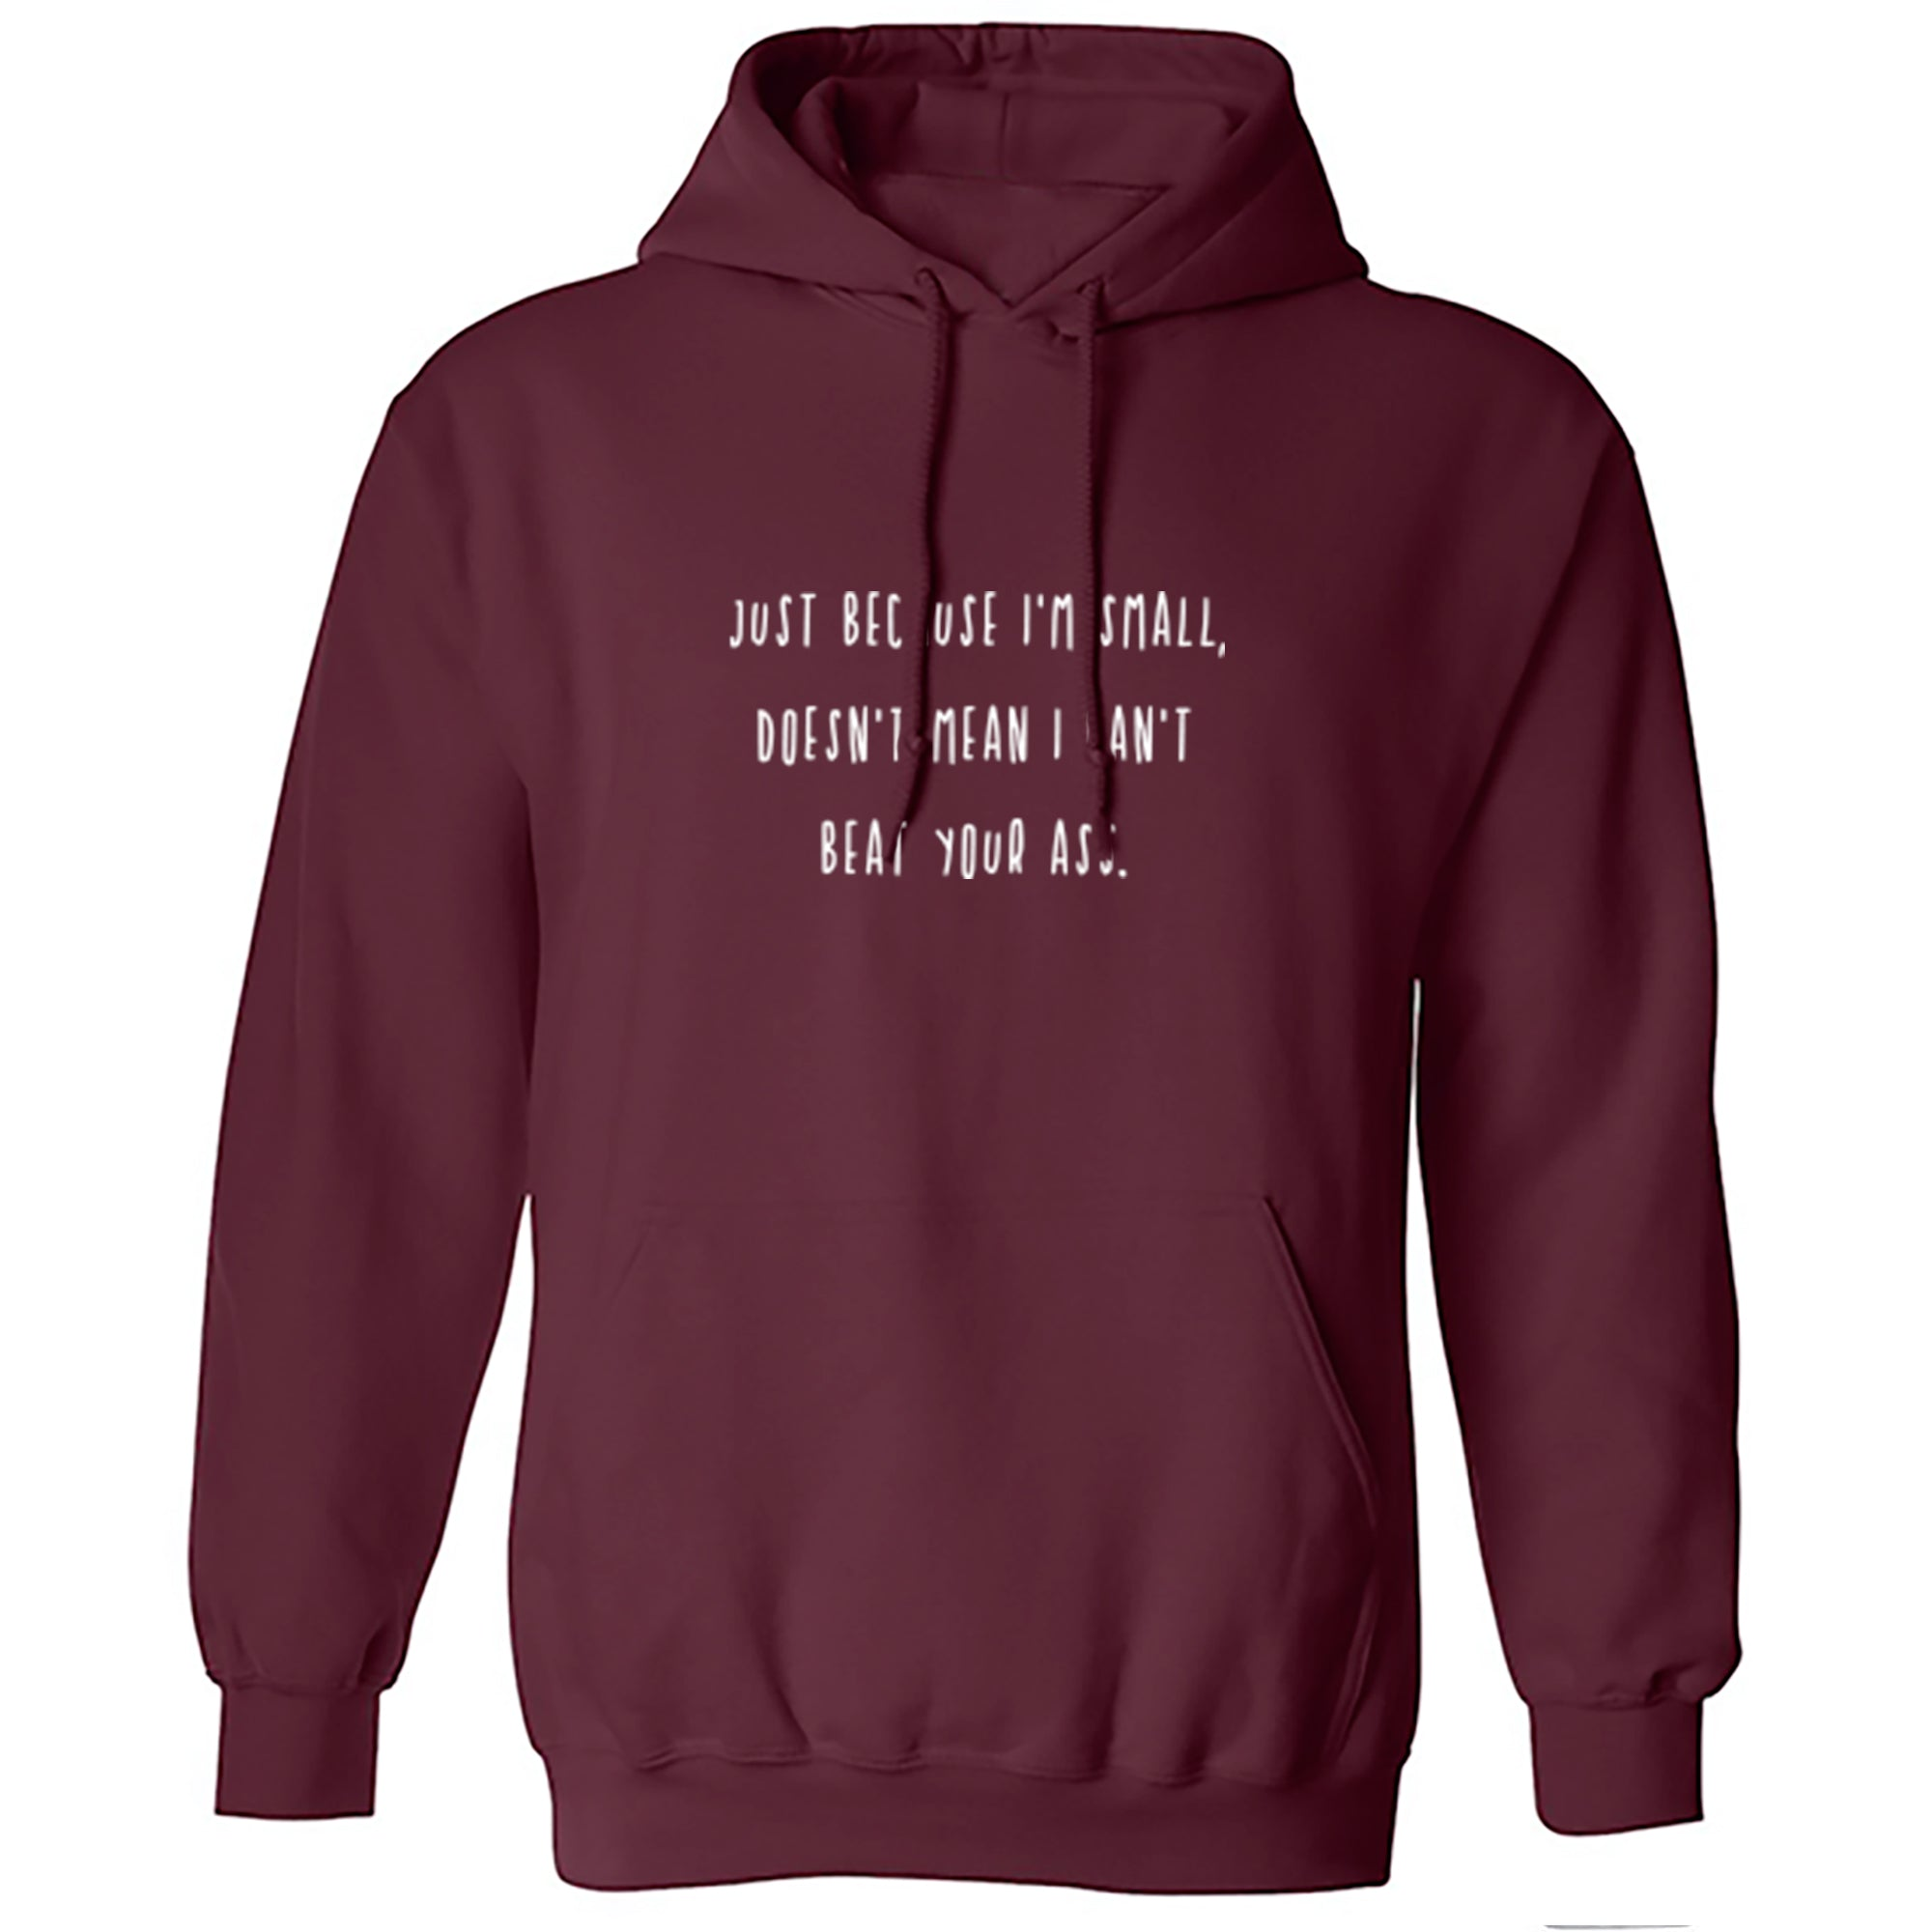 Just Because I'm Small, Doesn't Mean I Can't Beat Your Ass Unisex Hoodie S1164 - Illustrated Identity Ltd.